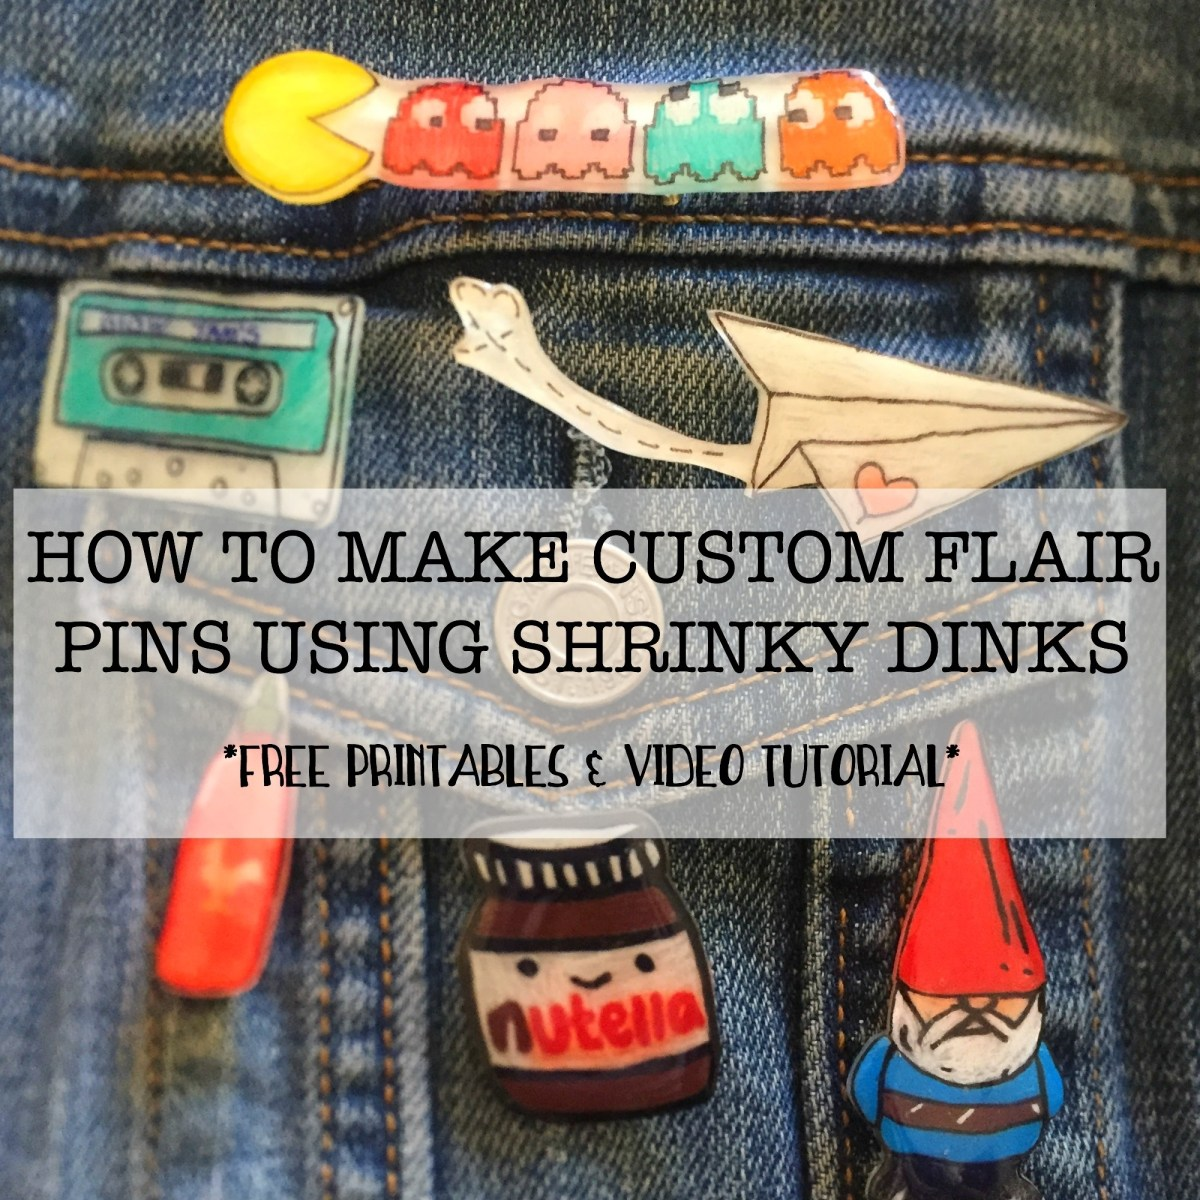 MAKE CUSTOM FLAIR PINS USING SHRINKY DINKS - VIDEO TUTORIAL